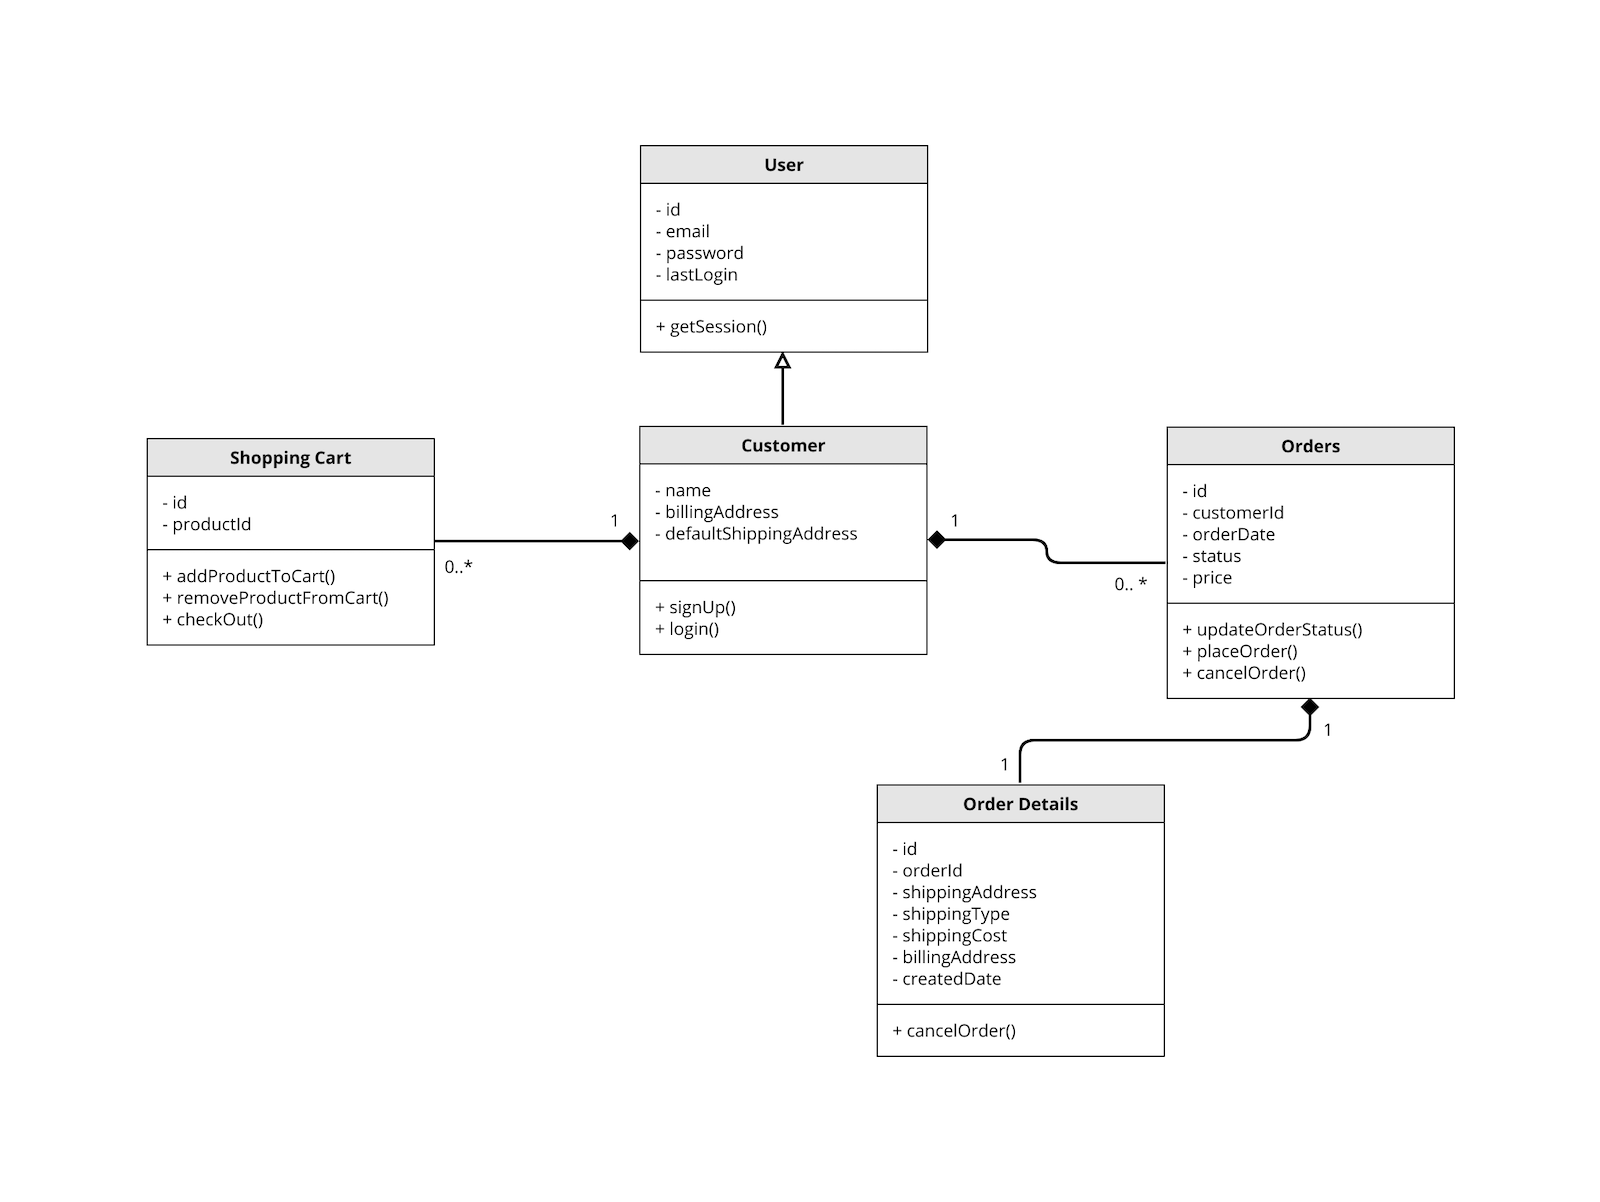 Screenshot of a UML Diagram template